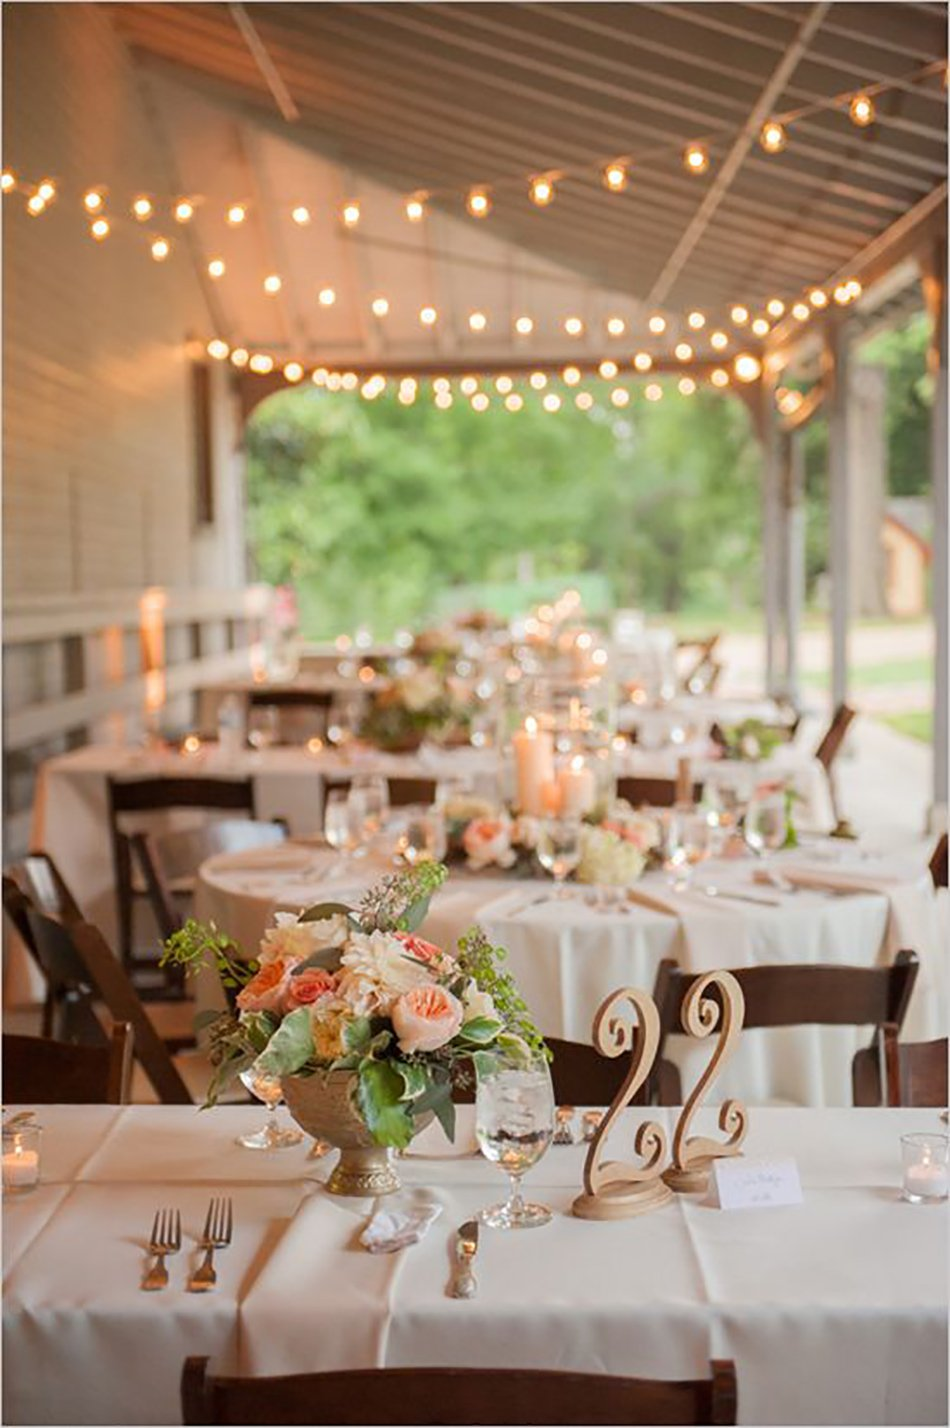 Wedding ideas by colour pastel peach table décor & Pastel Peach Wedding Table Decorations | CHWV